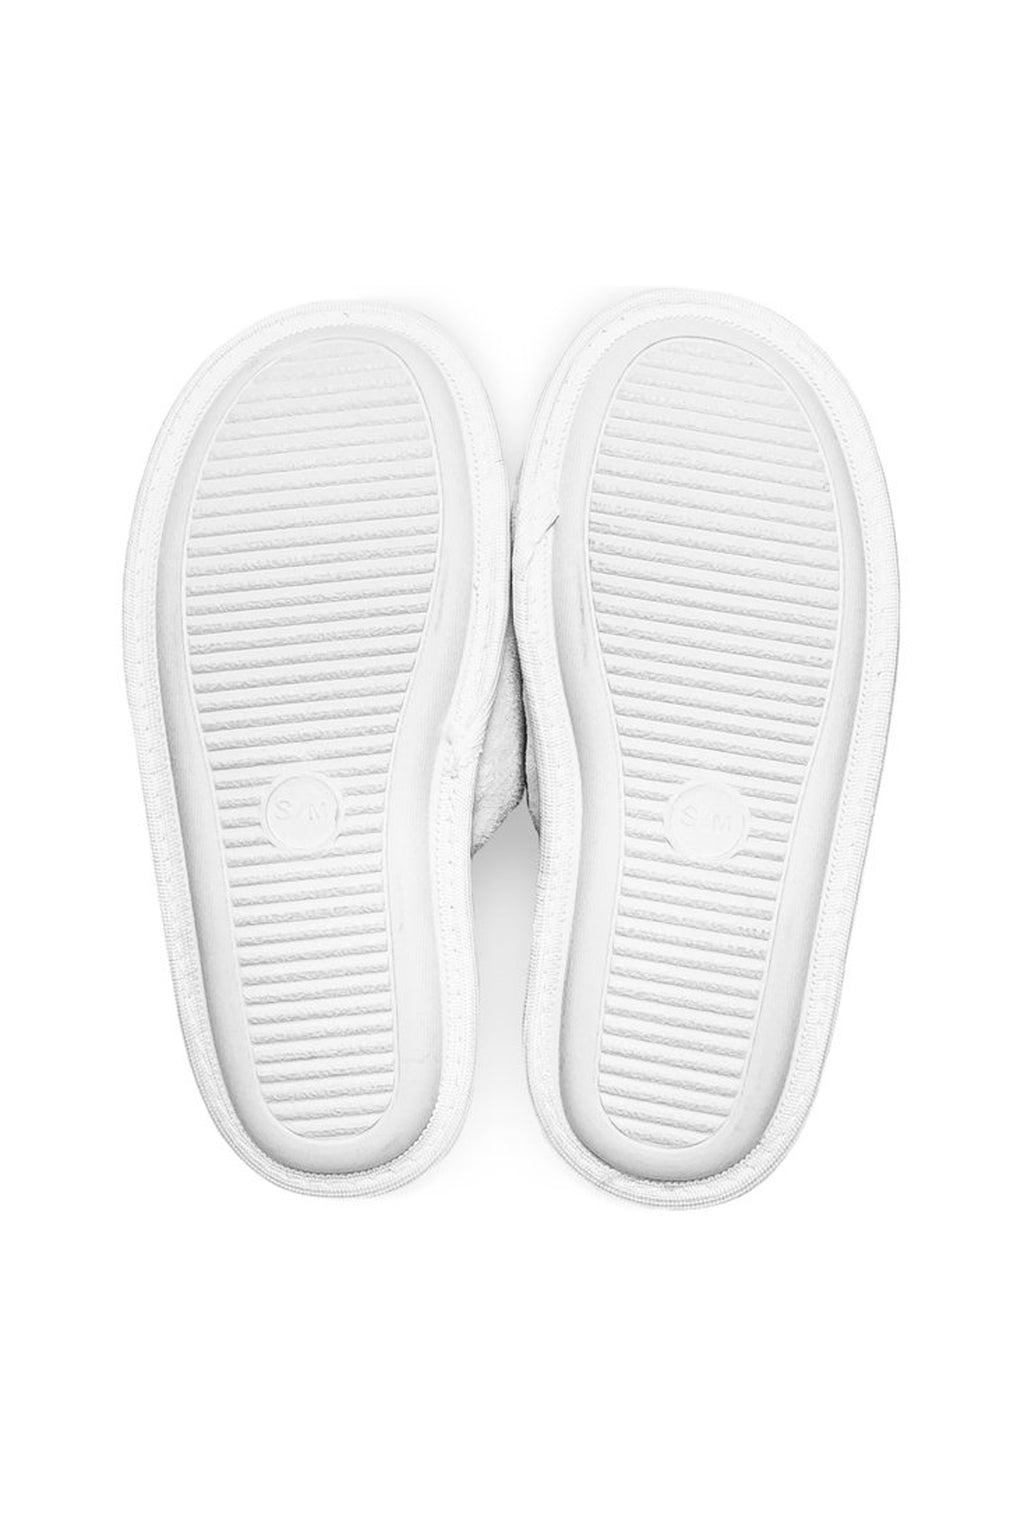 Women's White Slippers - Dress Like Coco